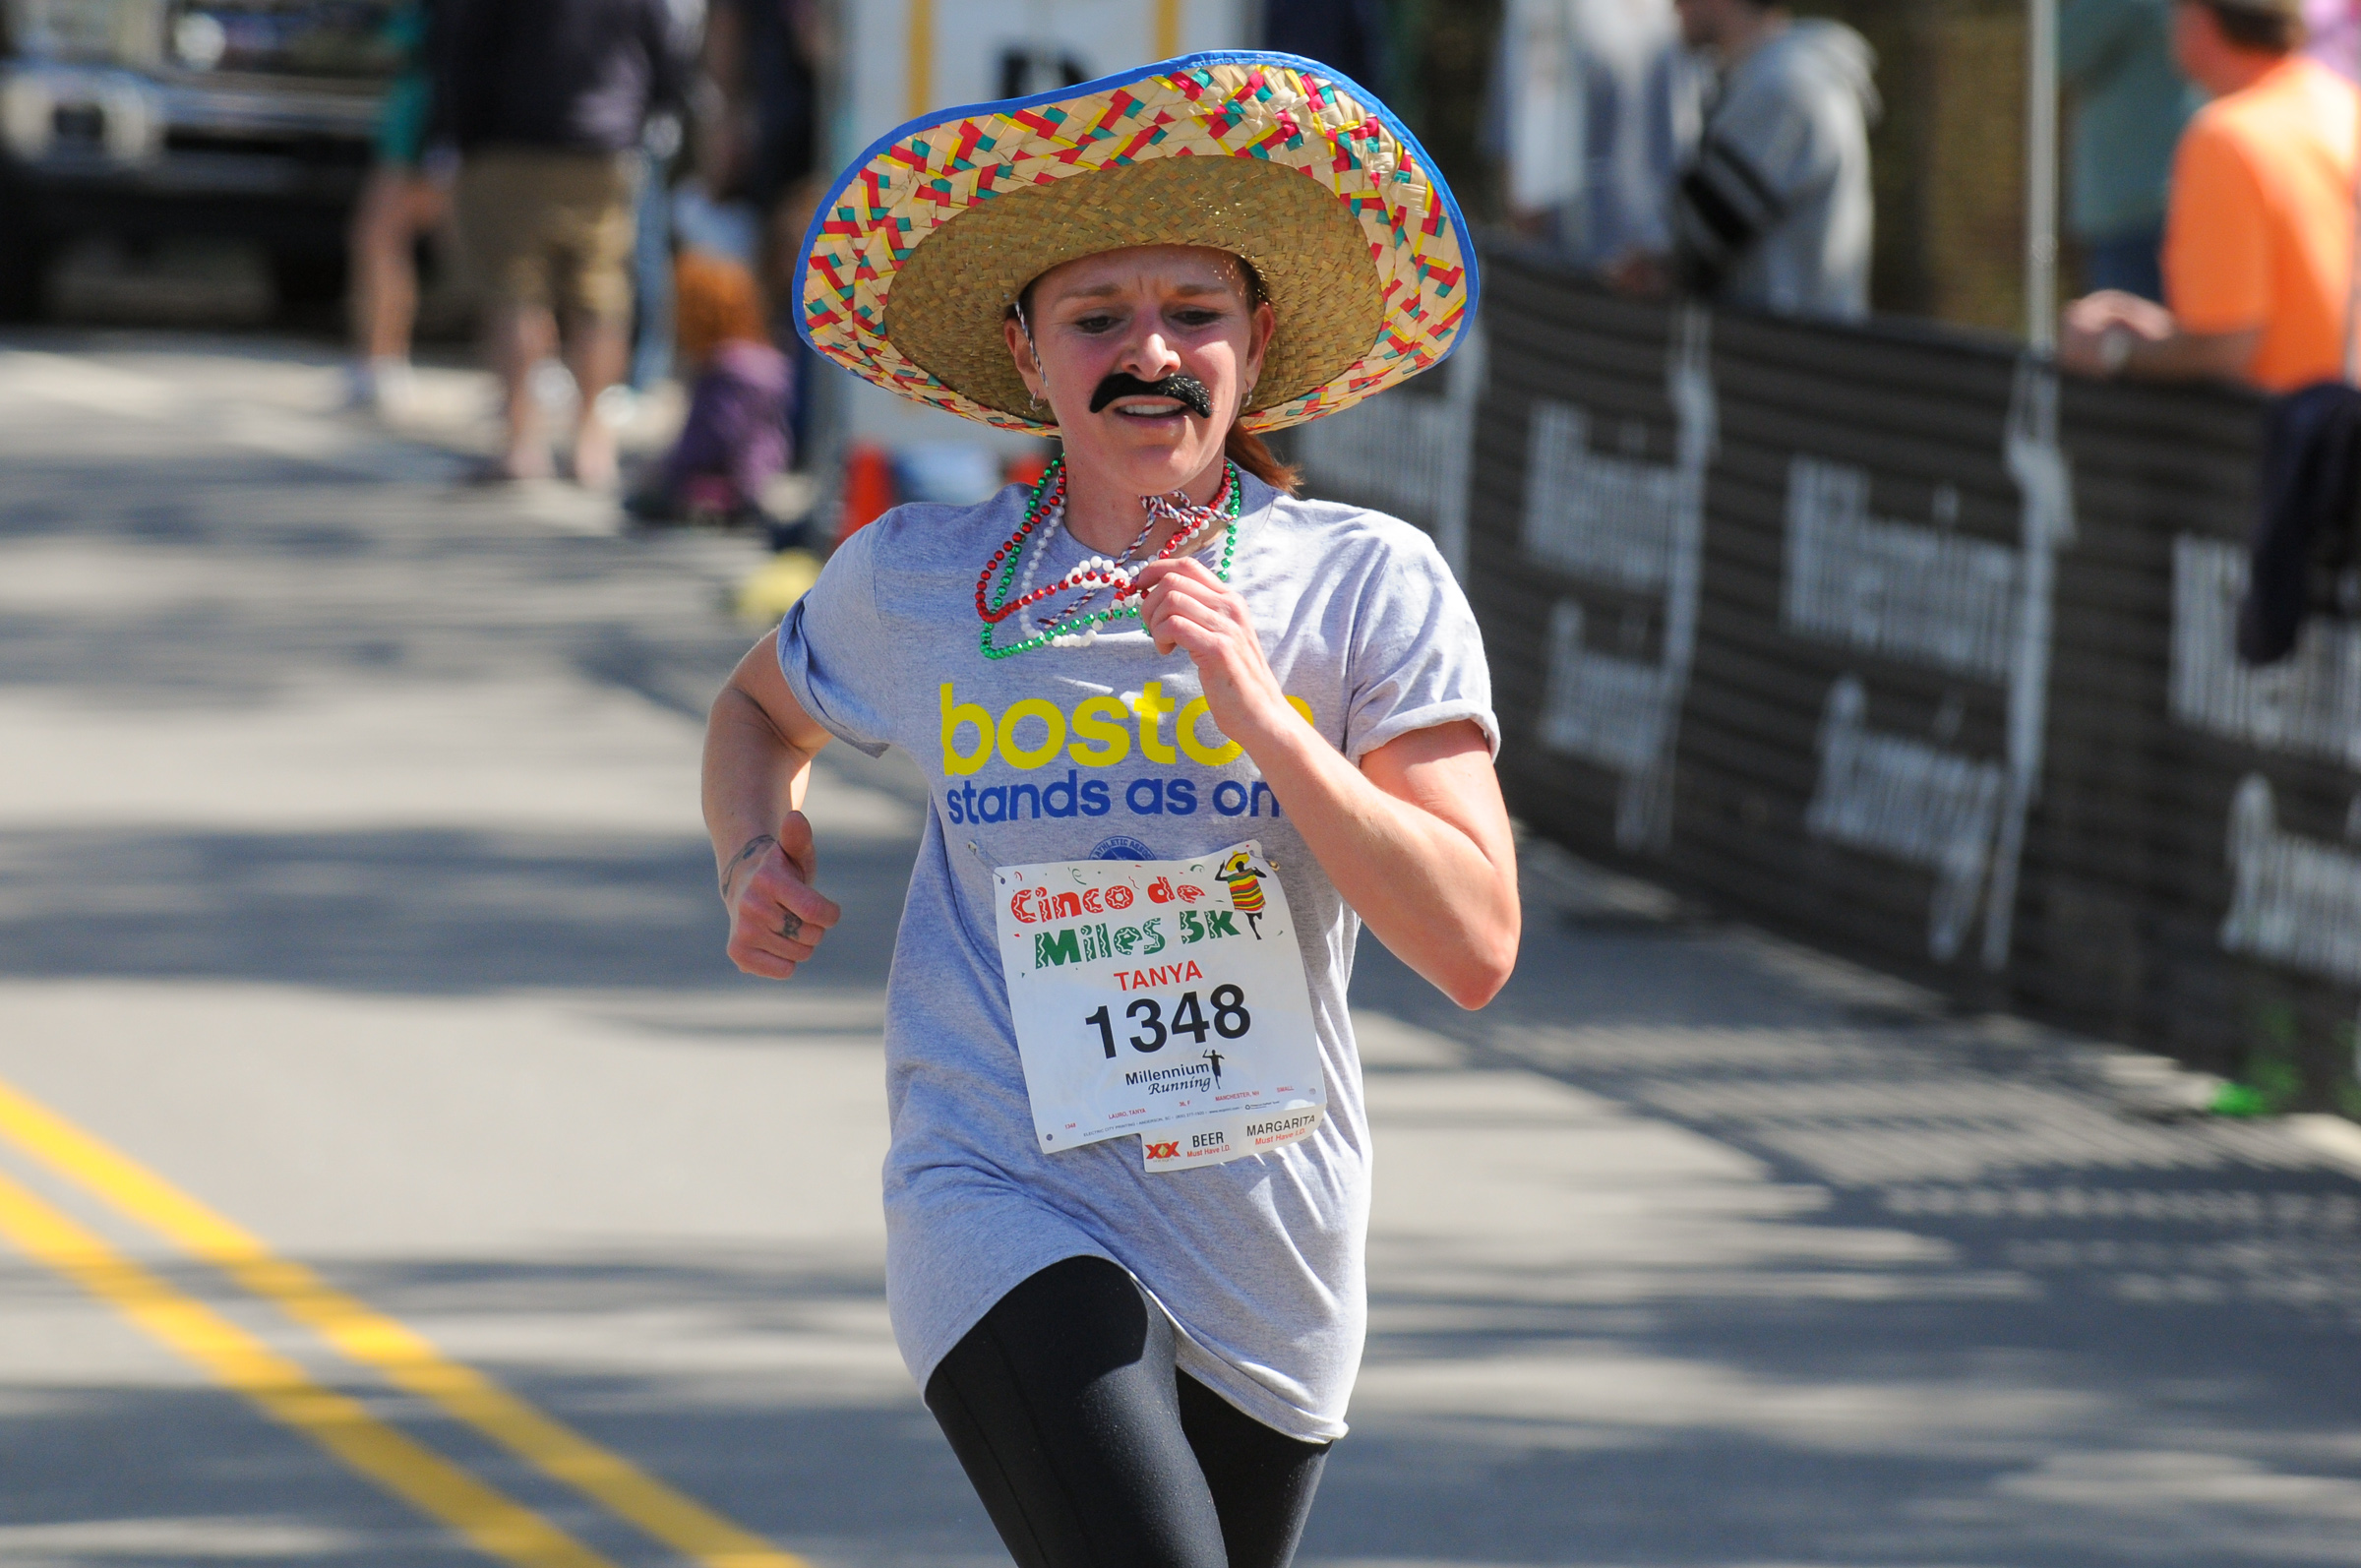 PHOTOS: 2013 Cinco de Miles